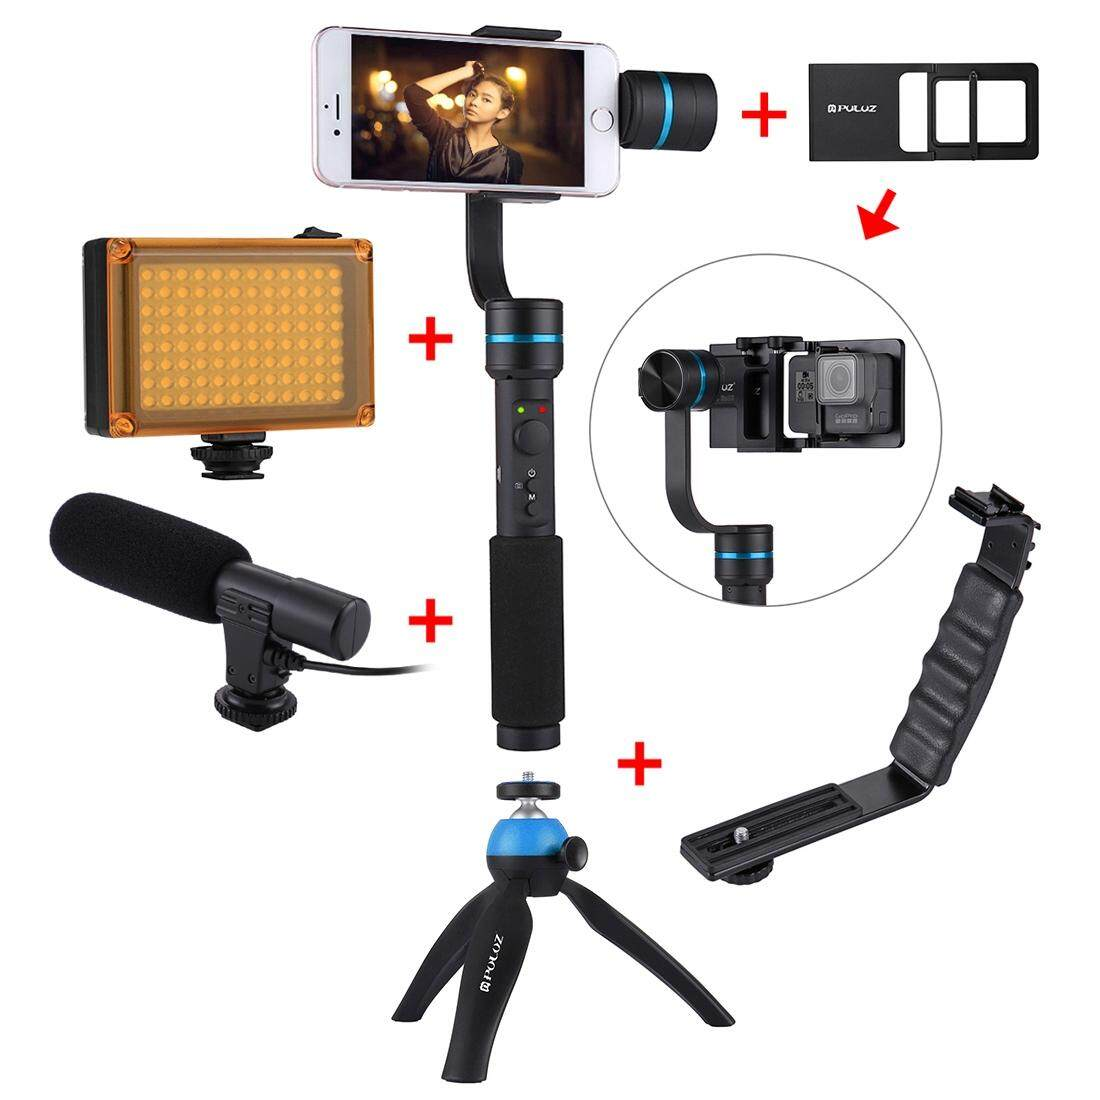 Where To Buy Puluz G1 3 Axis Stabilizer Handheld Gimbal With Clamp Mount And Tripod Holder L Shape Bracket Led Studio Light Video Shotgun Microphone Switch Mount Plate With Tripod Holder Blue Intl